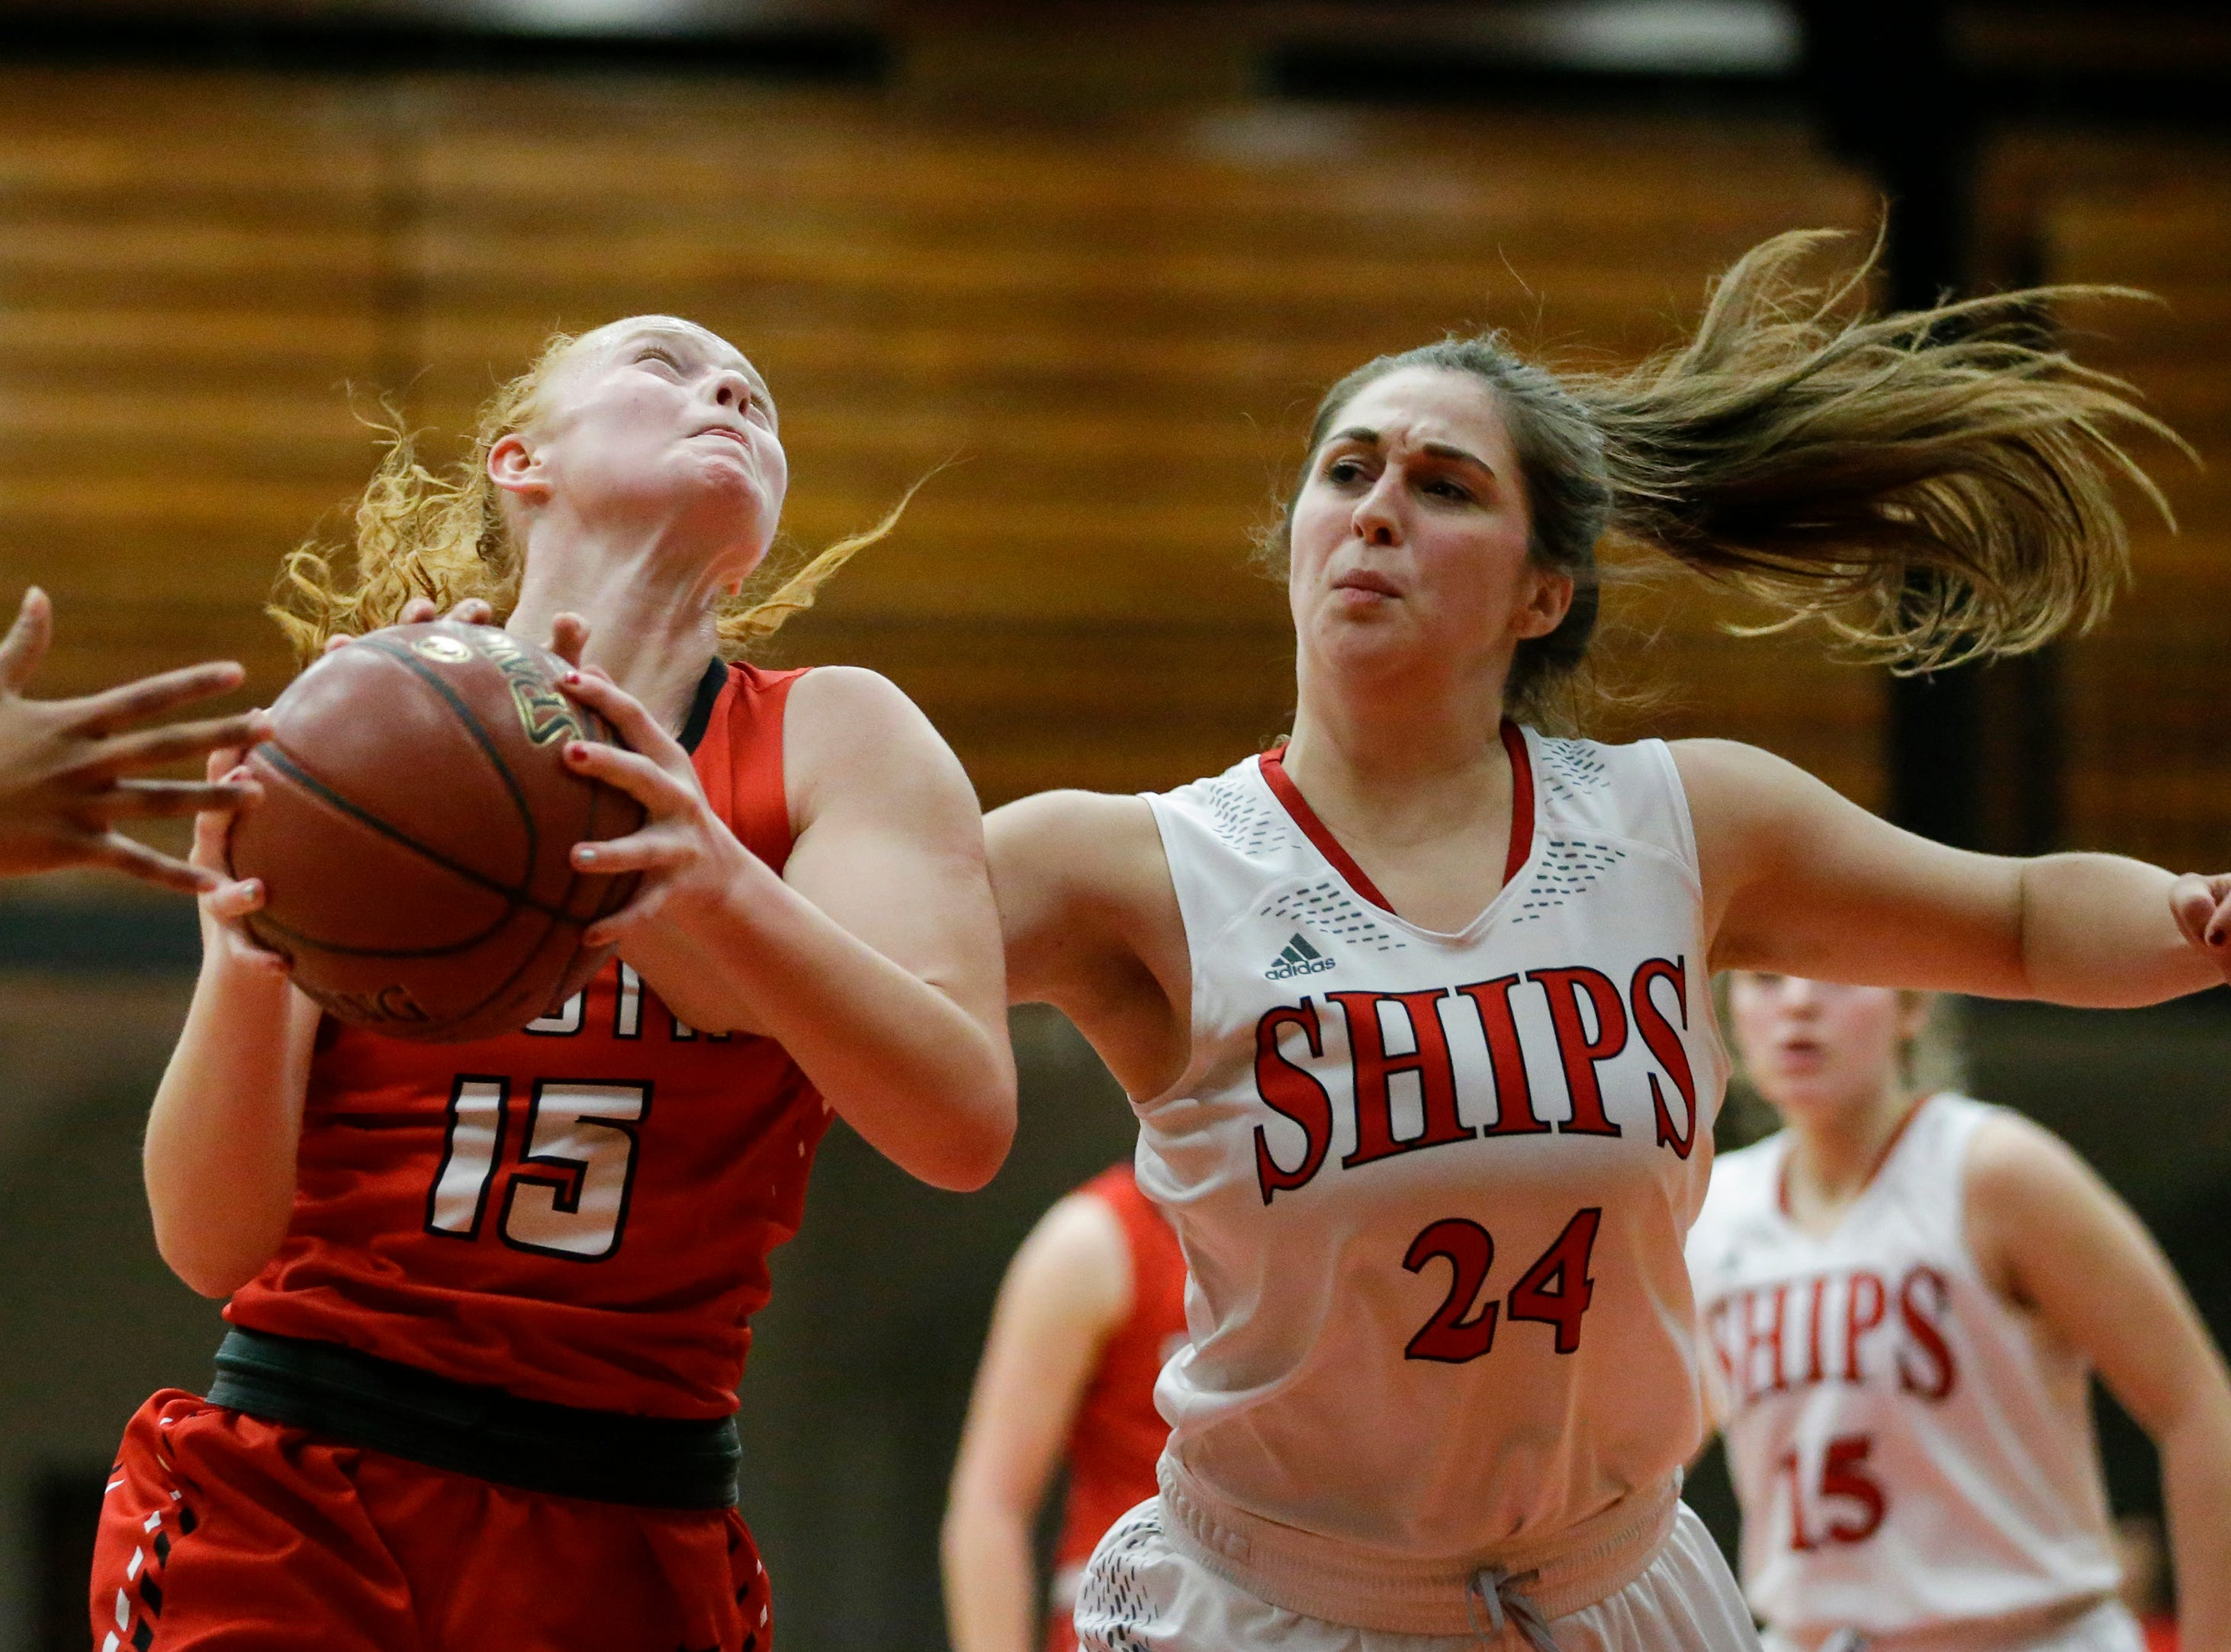 Sheboygan South's Lindsey Horen grabs a rebound over Manitowoc Lincoln's Morgan Bartow during an FRCC matchup at Manitowoc Lincoln High School Friday, January 4, 2019, in Manitowoc, Wis. Joshua Clark/USA TODAY NETWORK-Wisconsin